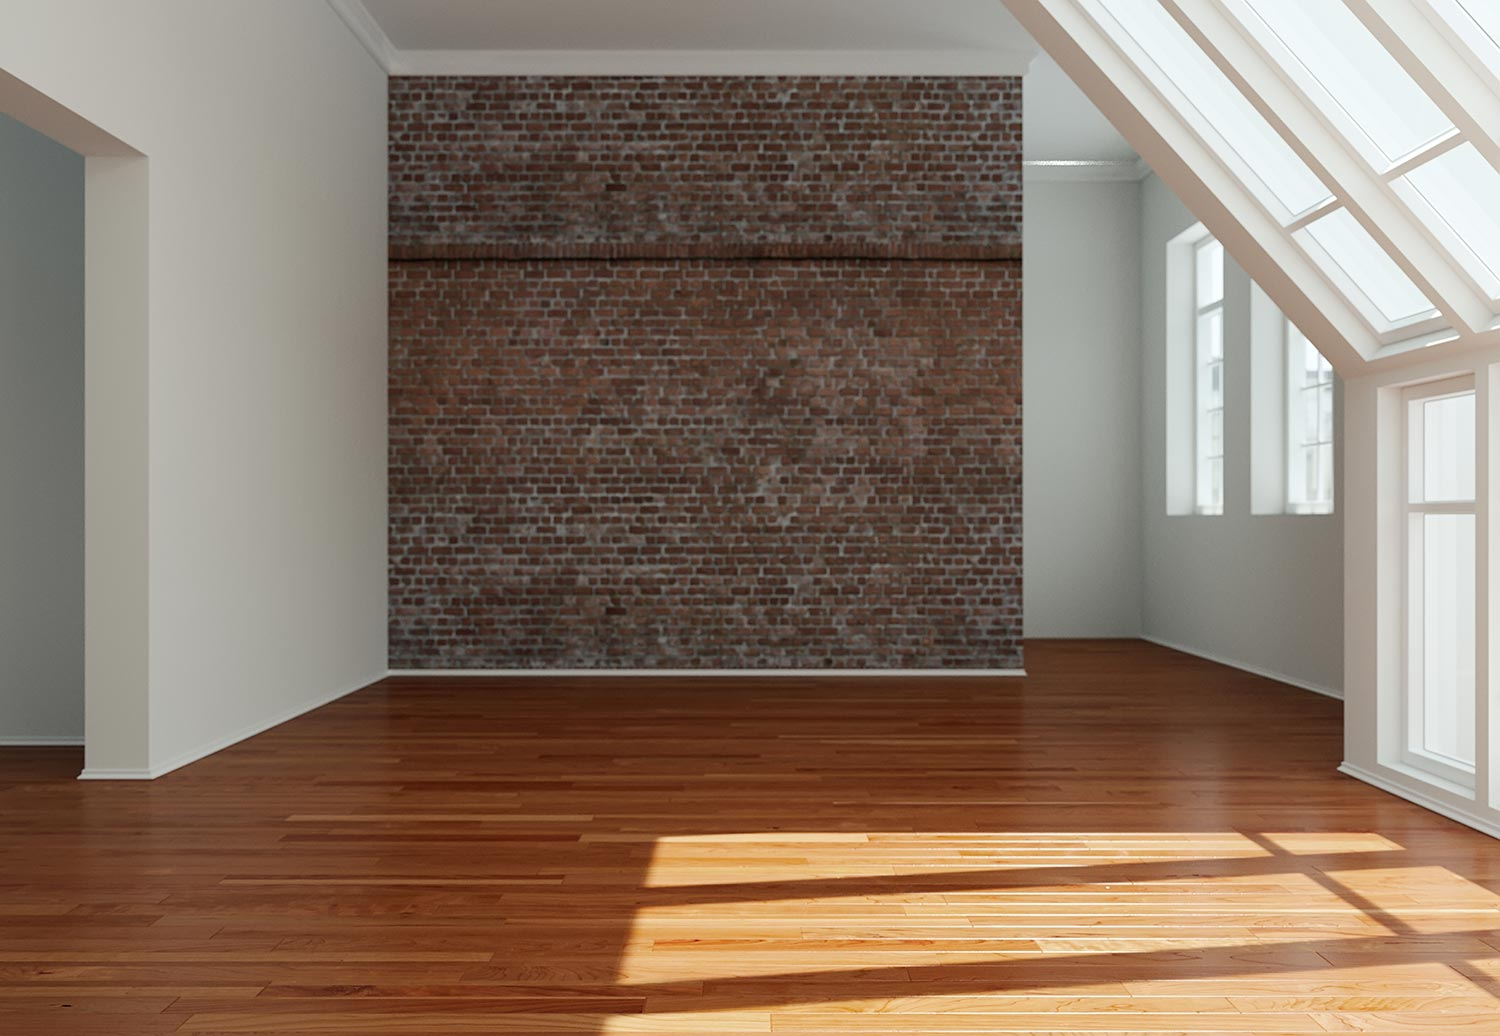 Empty room with windows and parquet